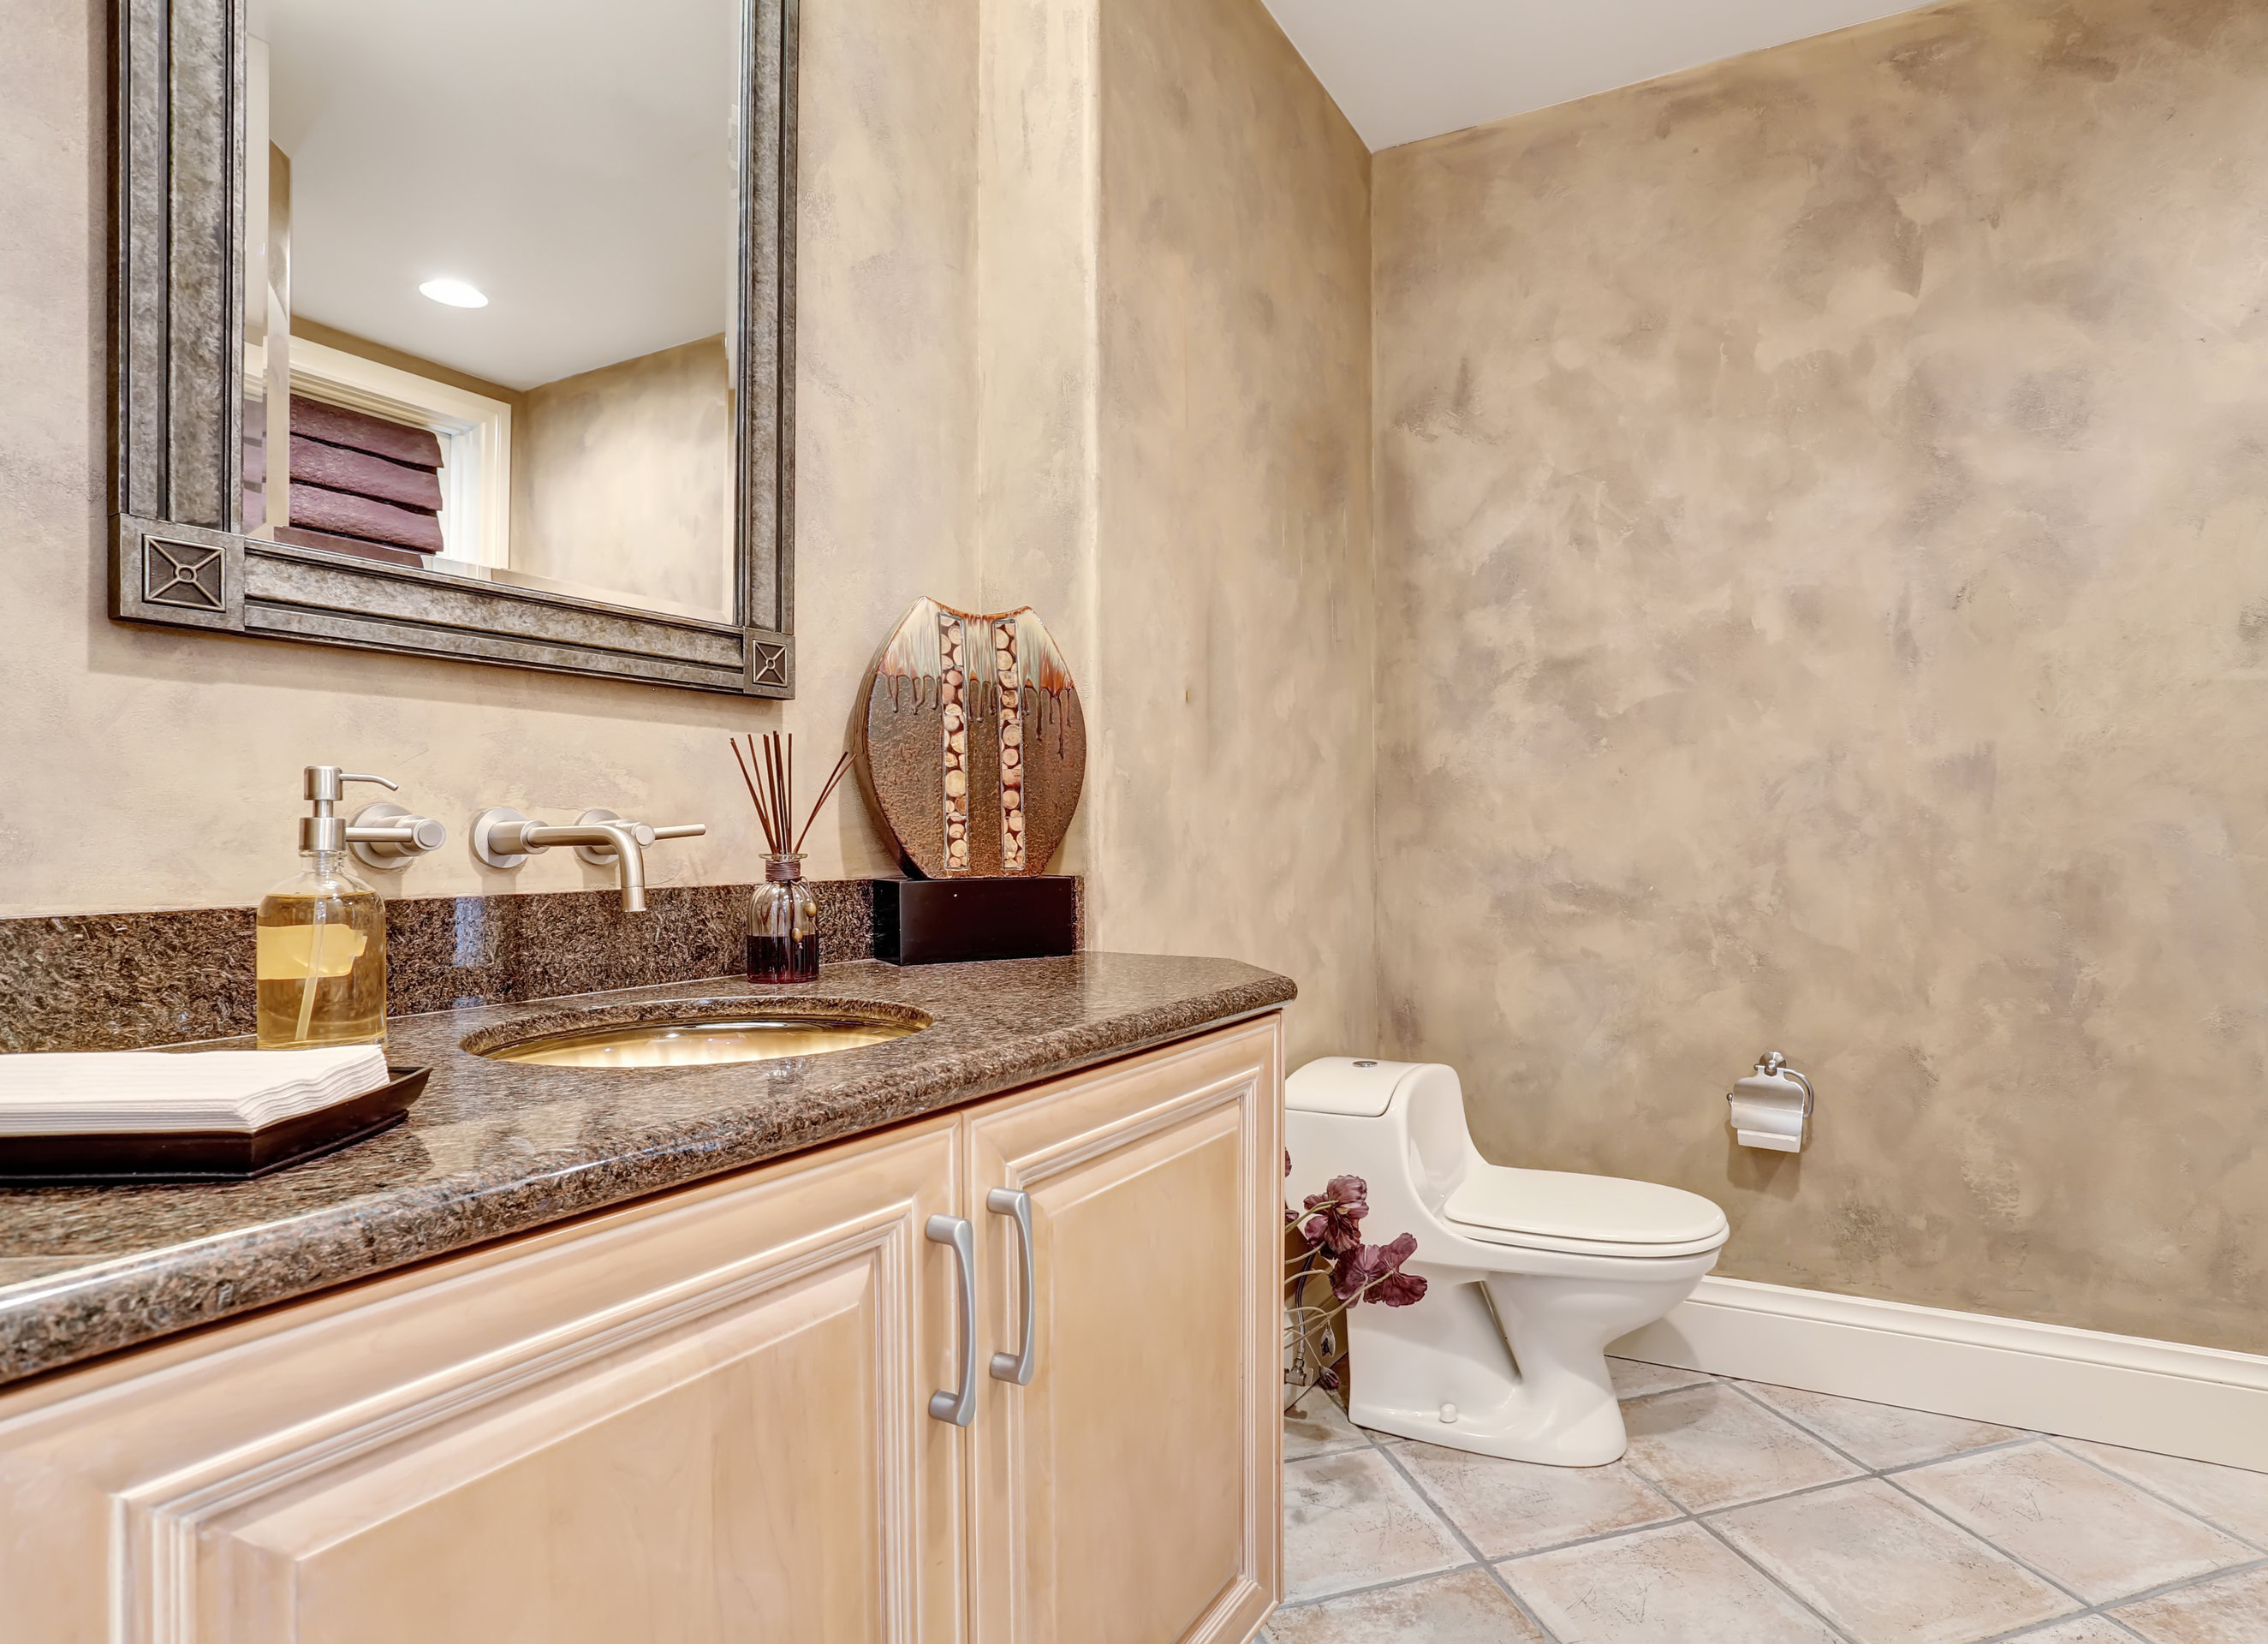 A half bathroom can add value to your home.